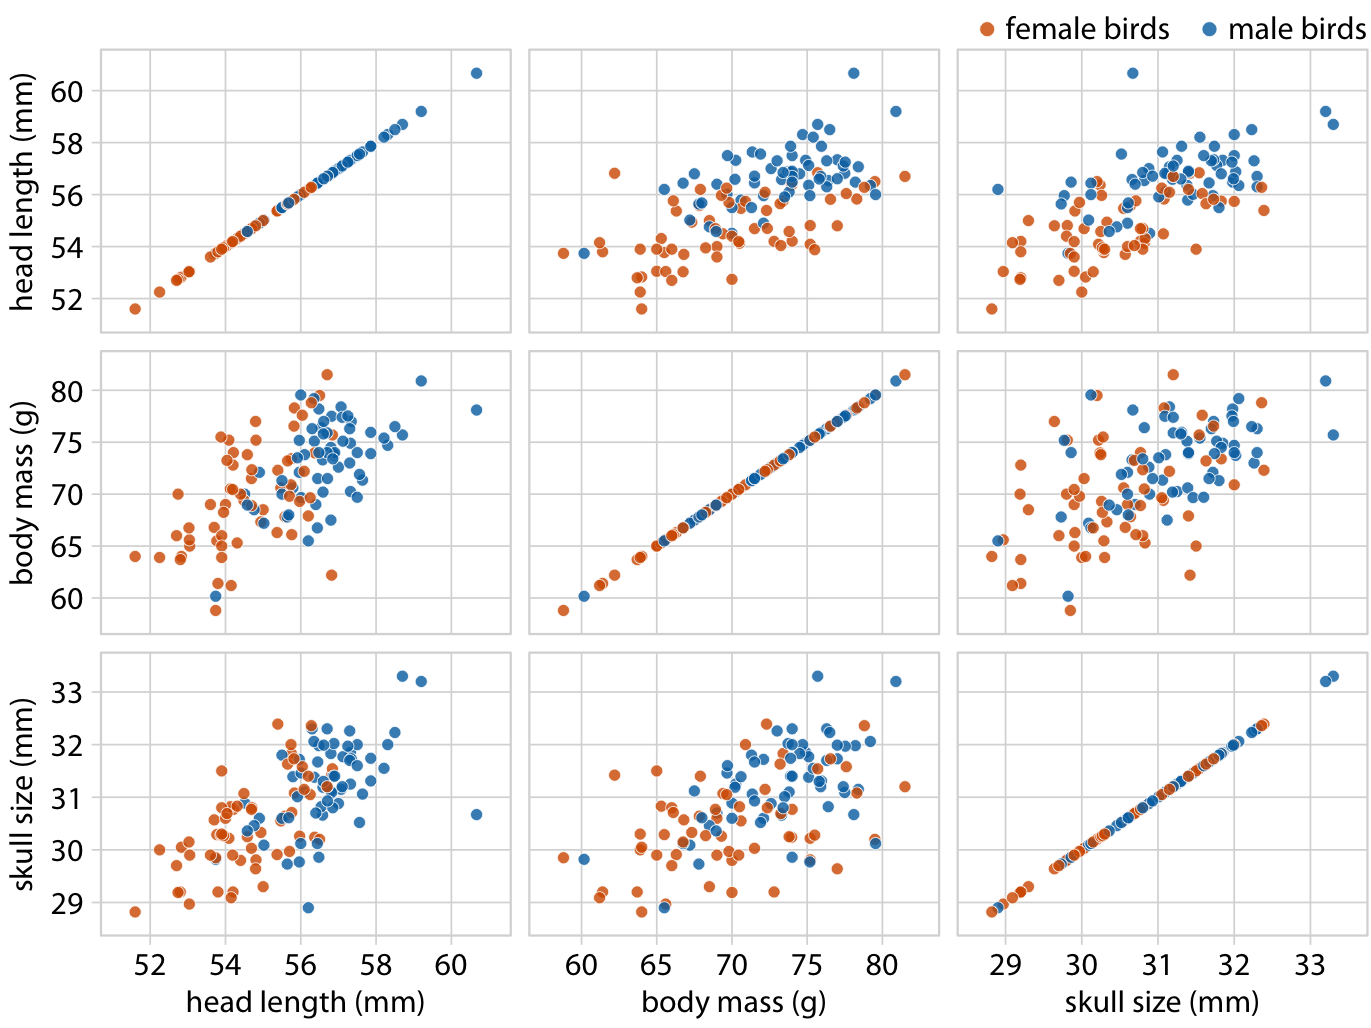 All-against-all scatter plot matrix of head length, body mass, and skull size, for 123 blue jays. This figure shows the exact same data as Figure 12.2. However, because we are better at judging position than symbol size, correlations between skull size and the other two variables are easier to perceive in the pairwise scatter plots than in Figure 12.2. Data source: Keith Tarvin, Oberlin College